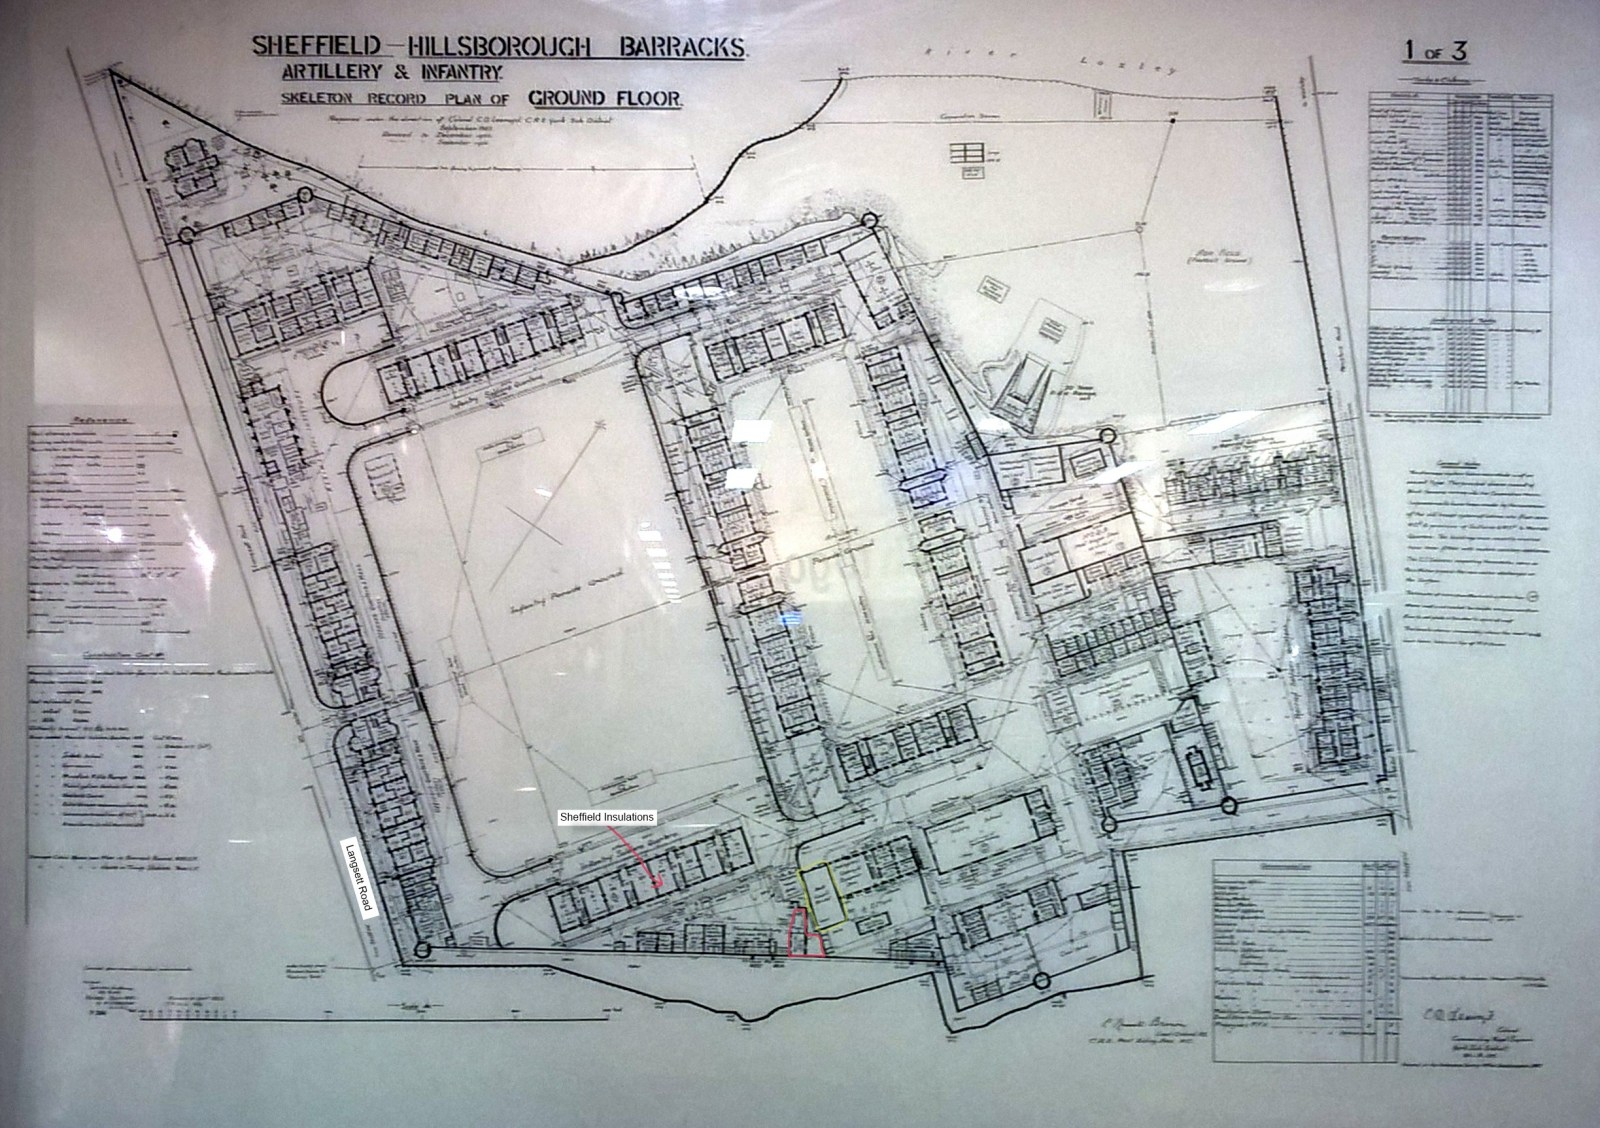 Hillsborough_Barracks_Plan marked.jpg